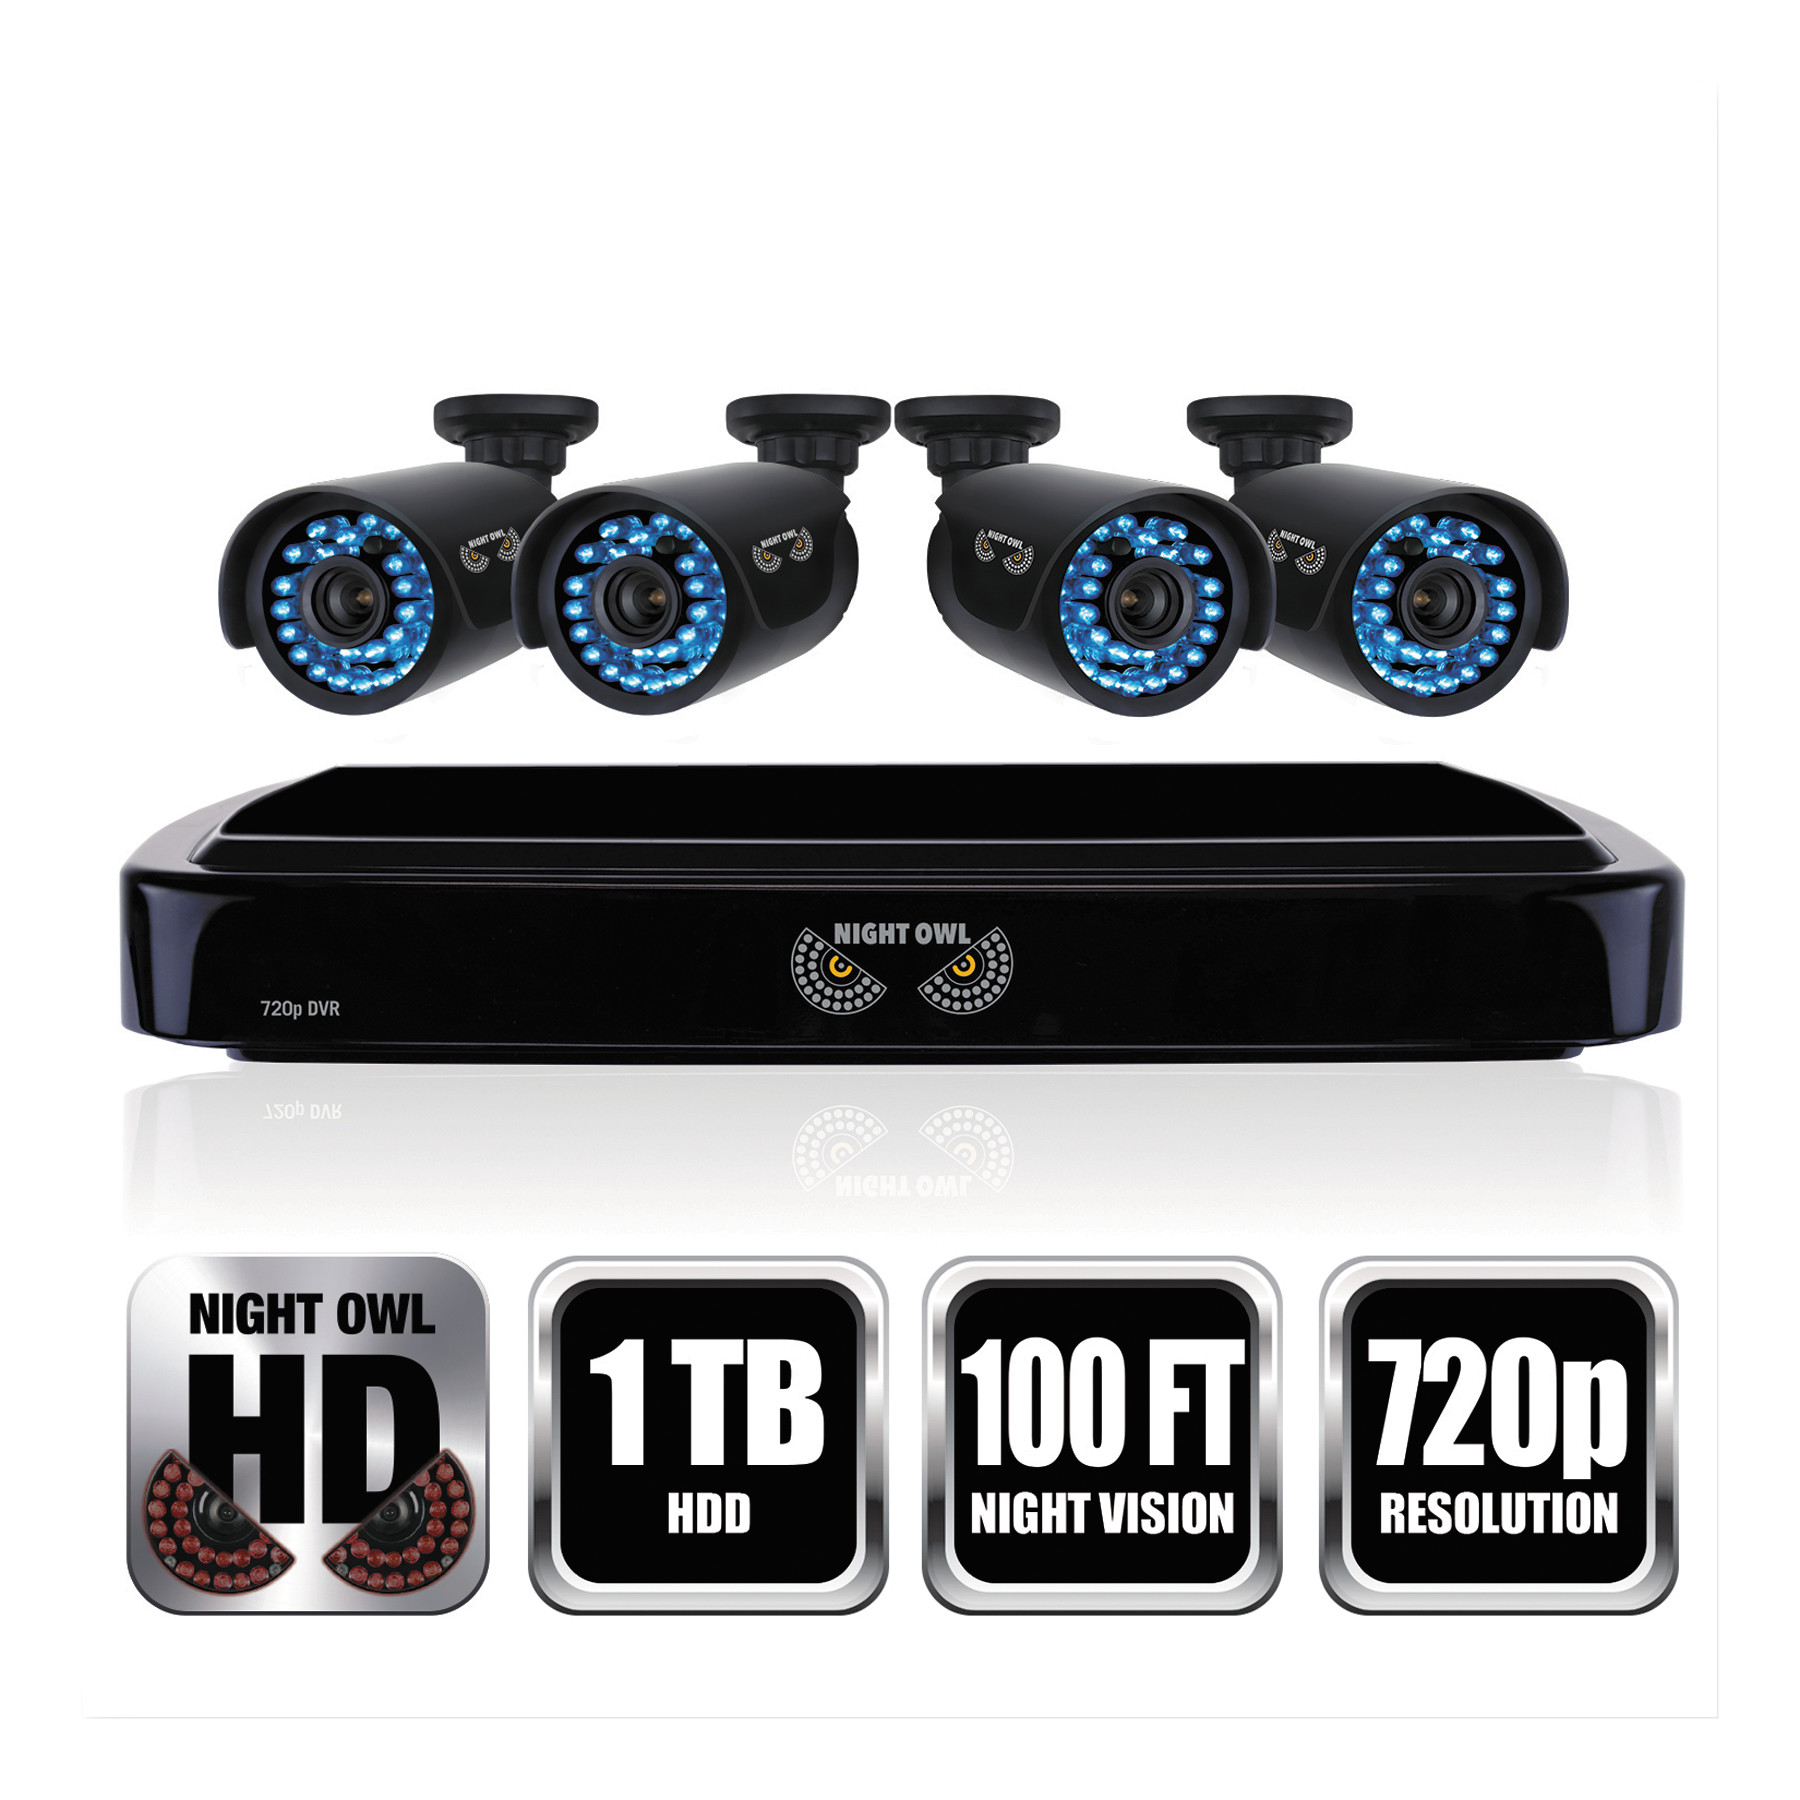 Night Owl Four Channel Smart HD Video Security System With Four 720p HD  Cameras